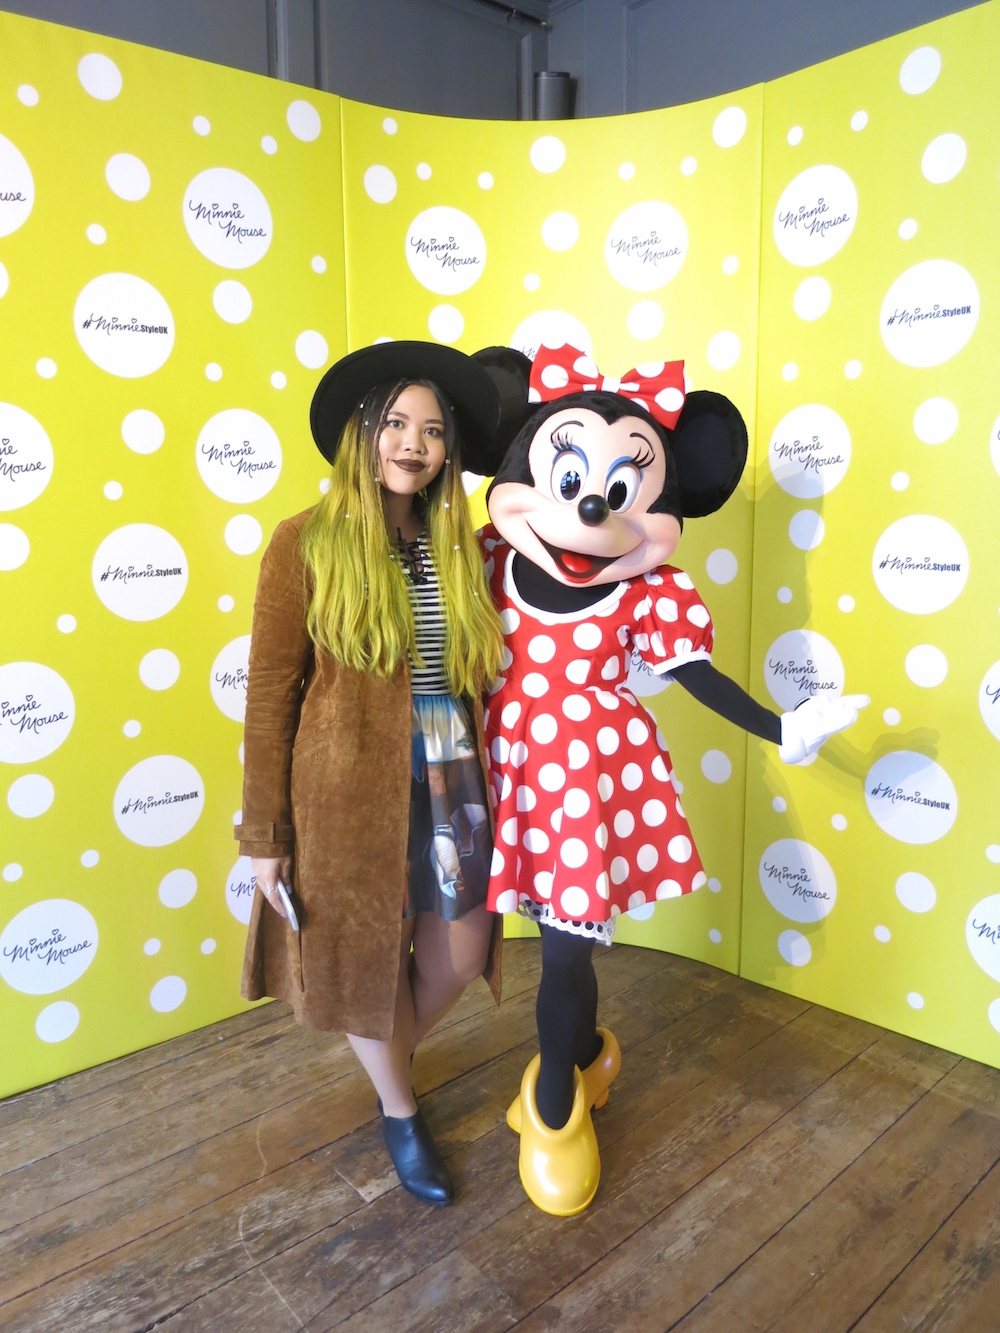 Mouse minnie celebrated lfw images